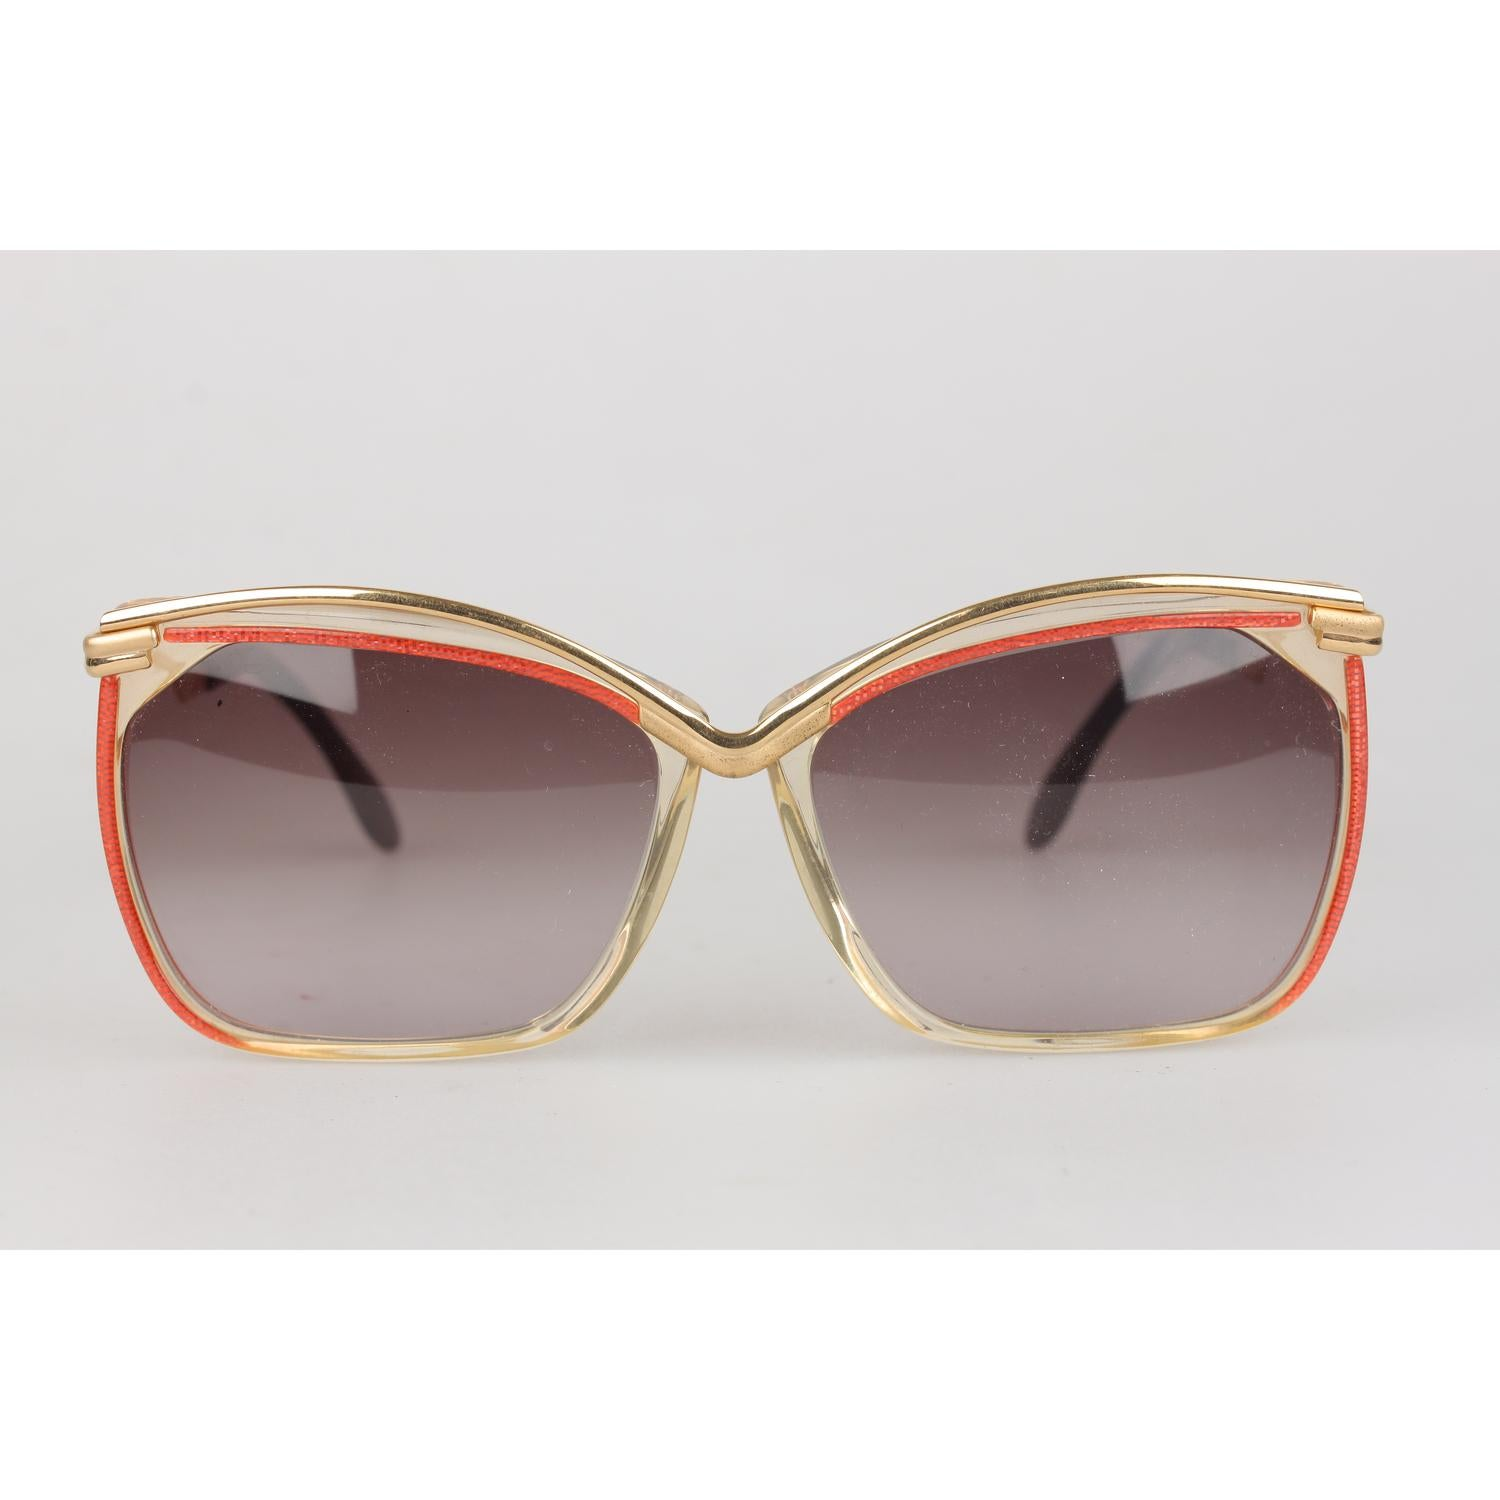 4bd50c593a4 Cazal Vintage Sunglasses 157 col 158 West Germany 58mm New Old Stock For  Sale at 1stdibs